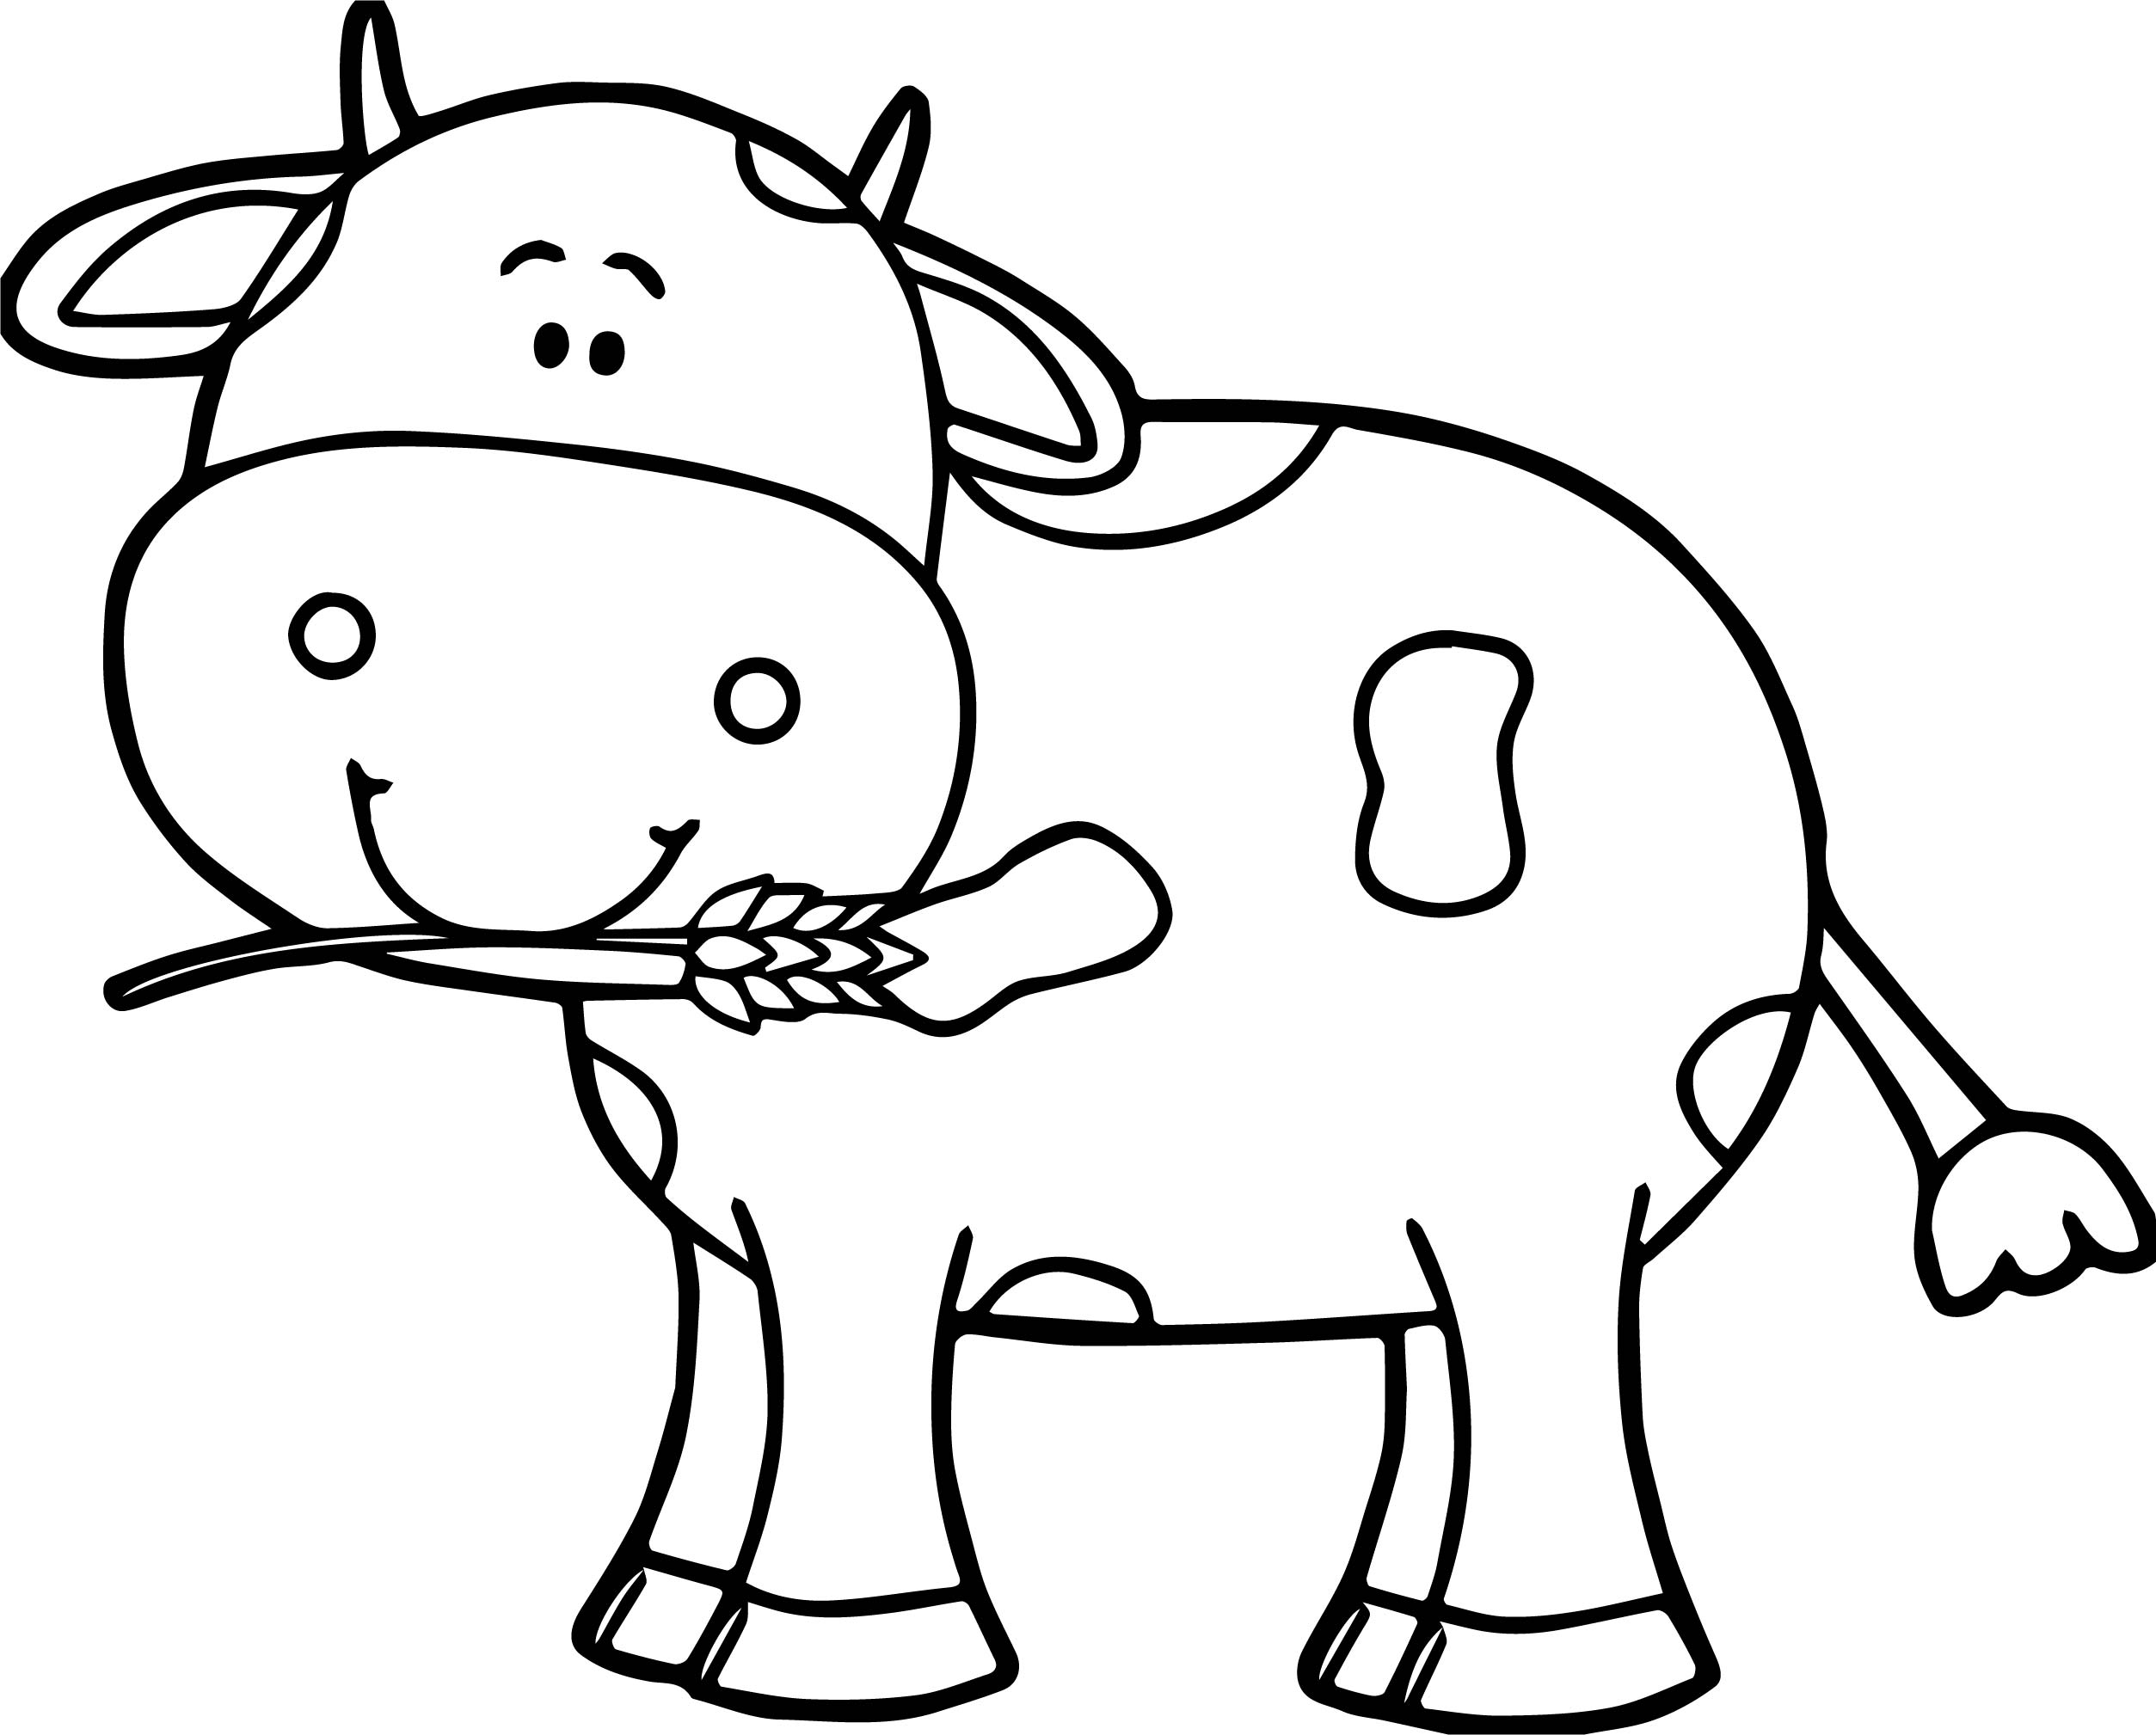 Cute Cow Coloring Page | Wecoloringpage